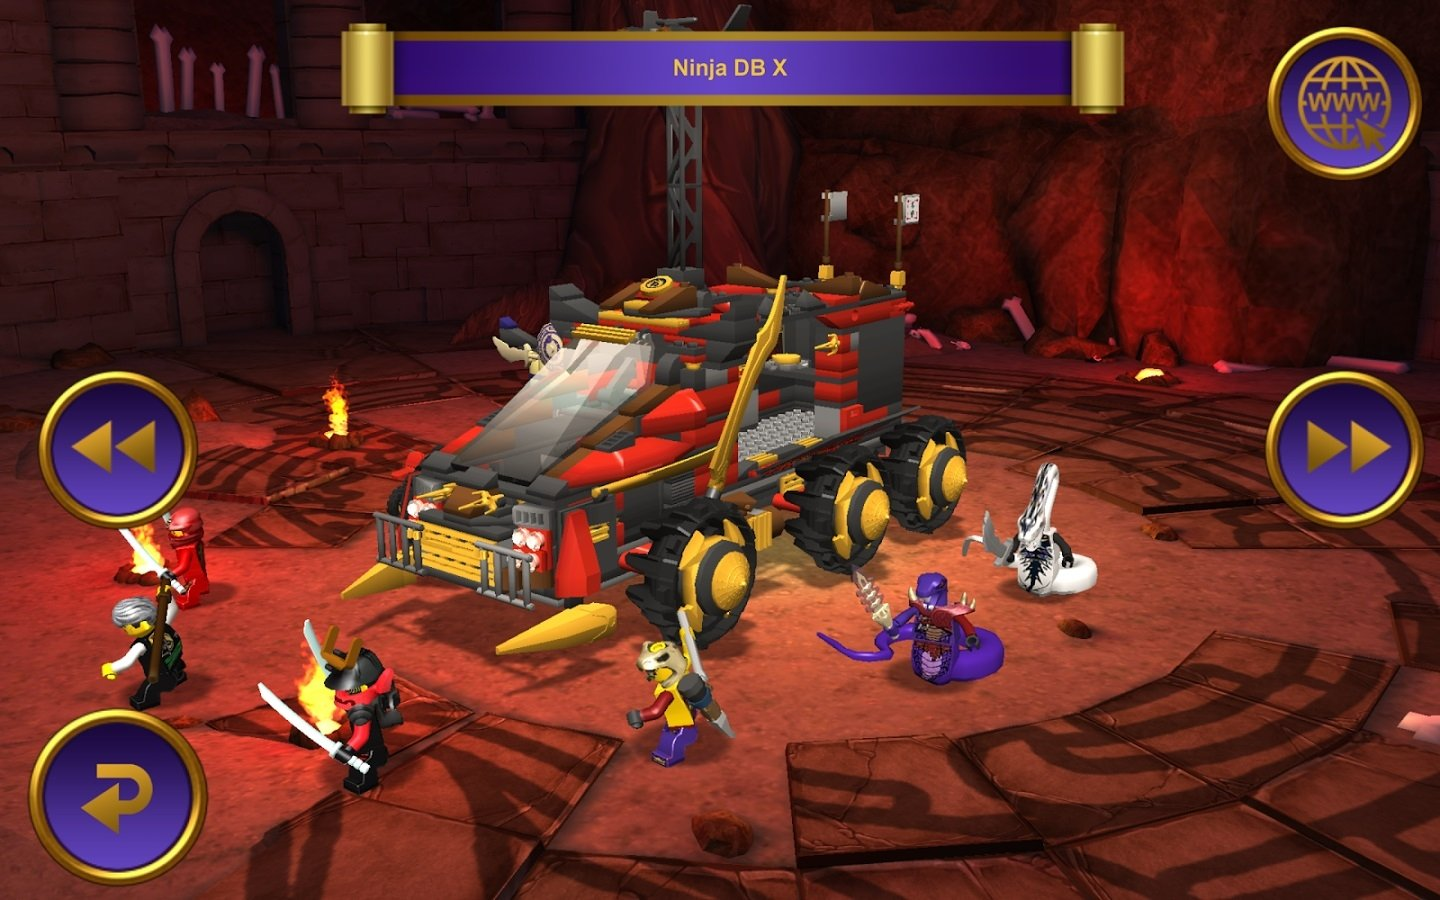 lego ninjago tournament android image 5